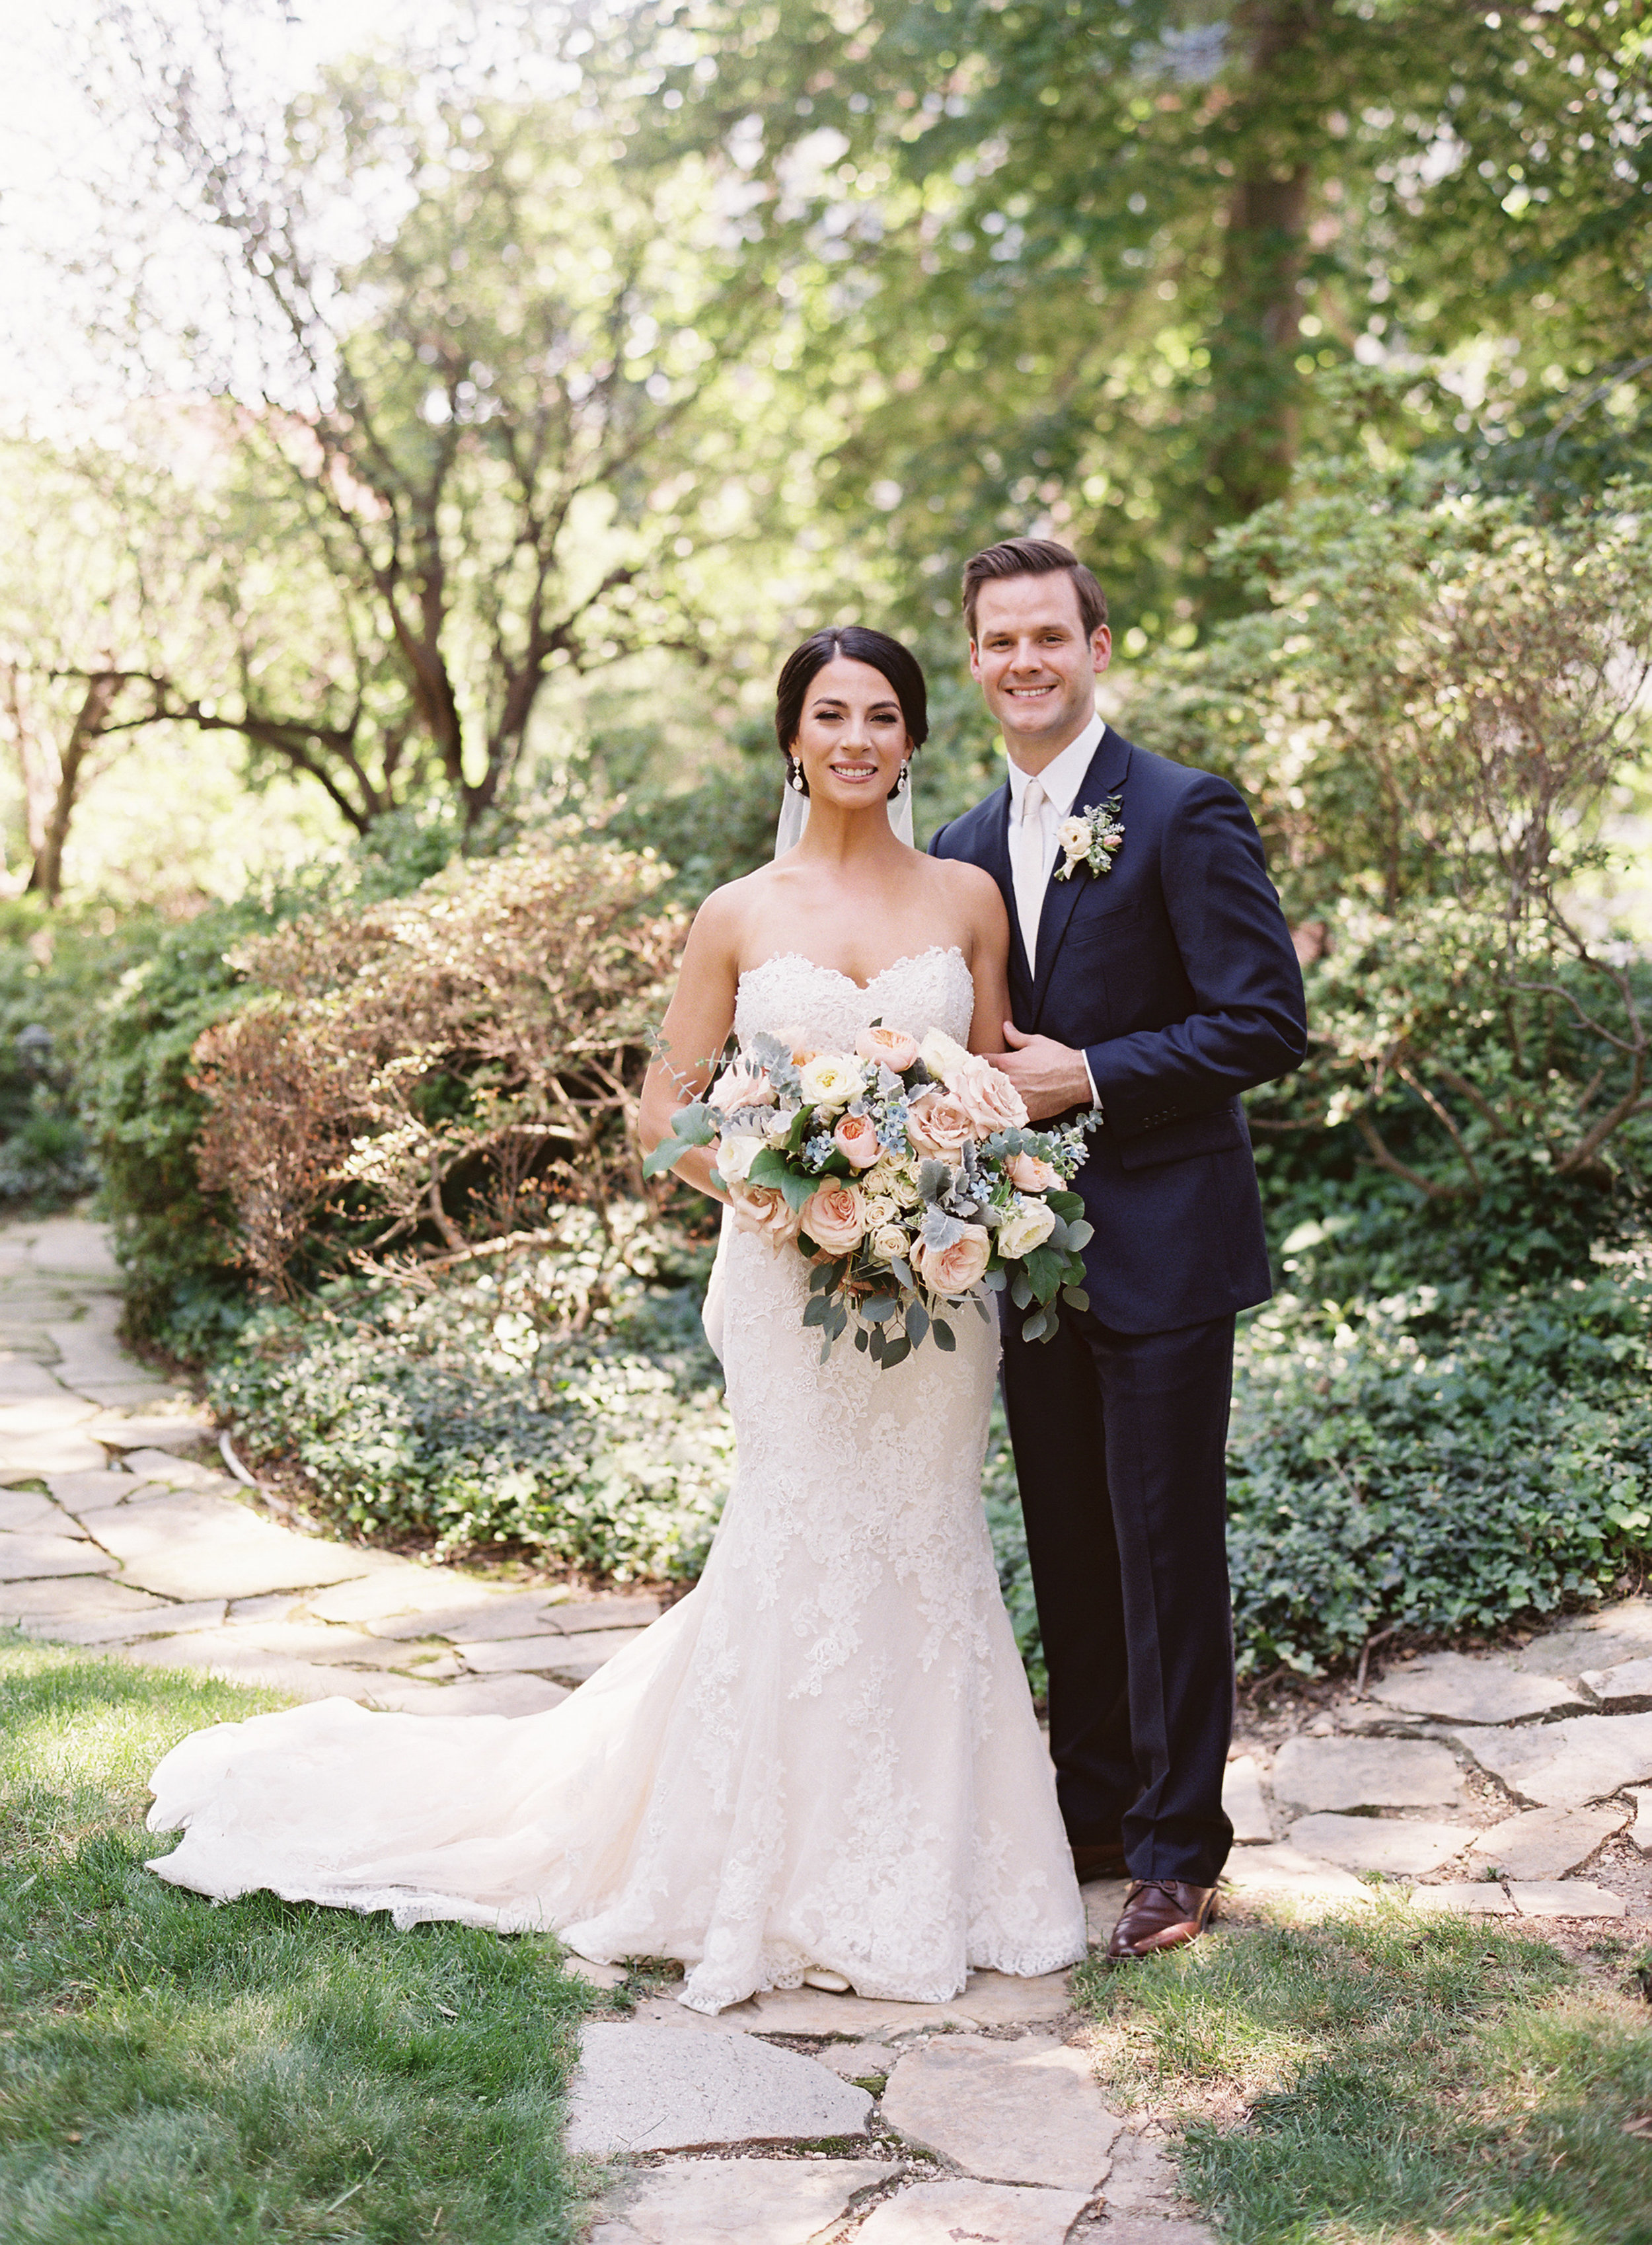 Claire and Tommy s Lovestory-Portraits Formals-0099.jpg